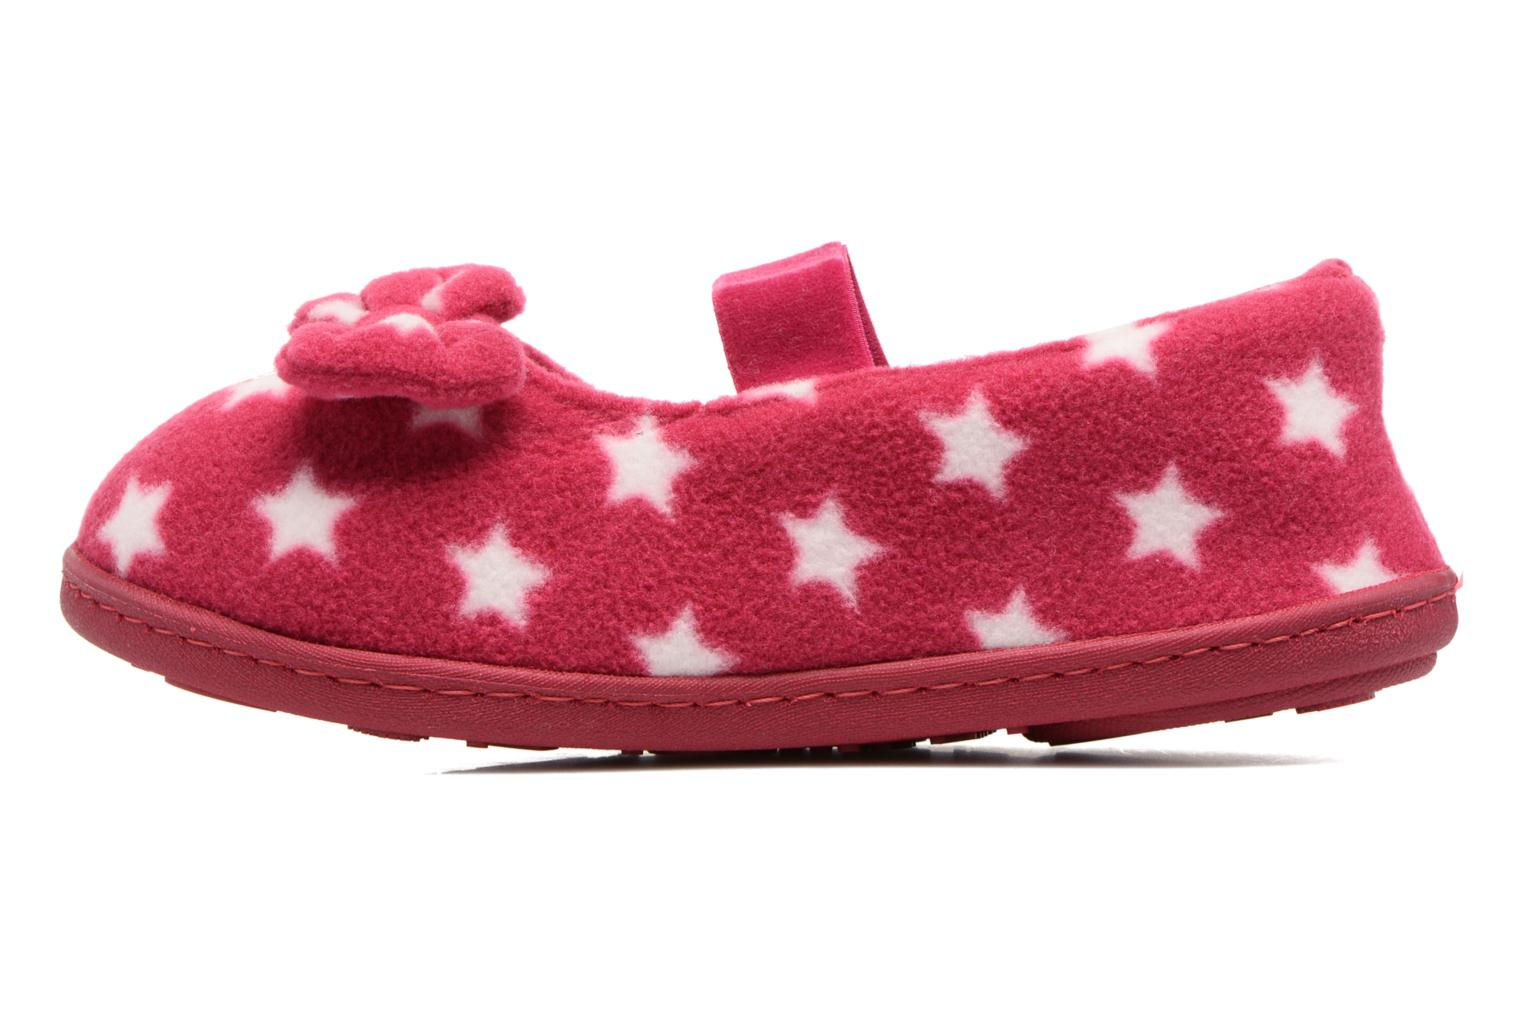 Chaussons Isotoner Ballerine Polaire Rose vue face